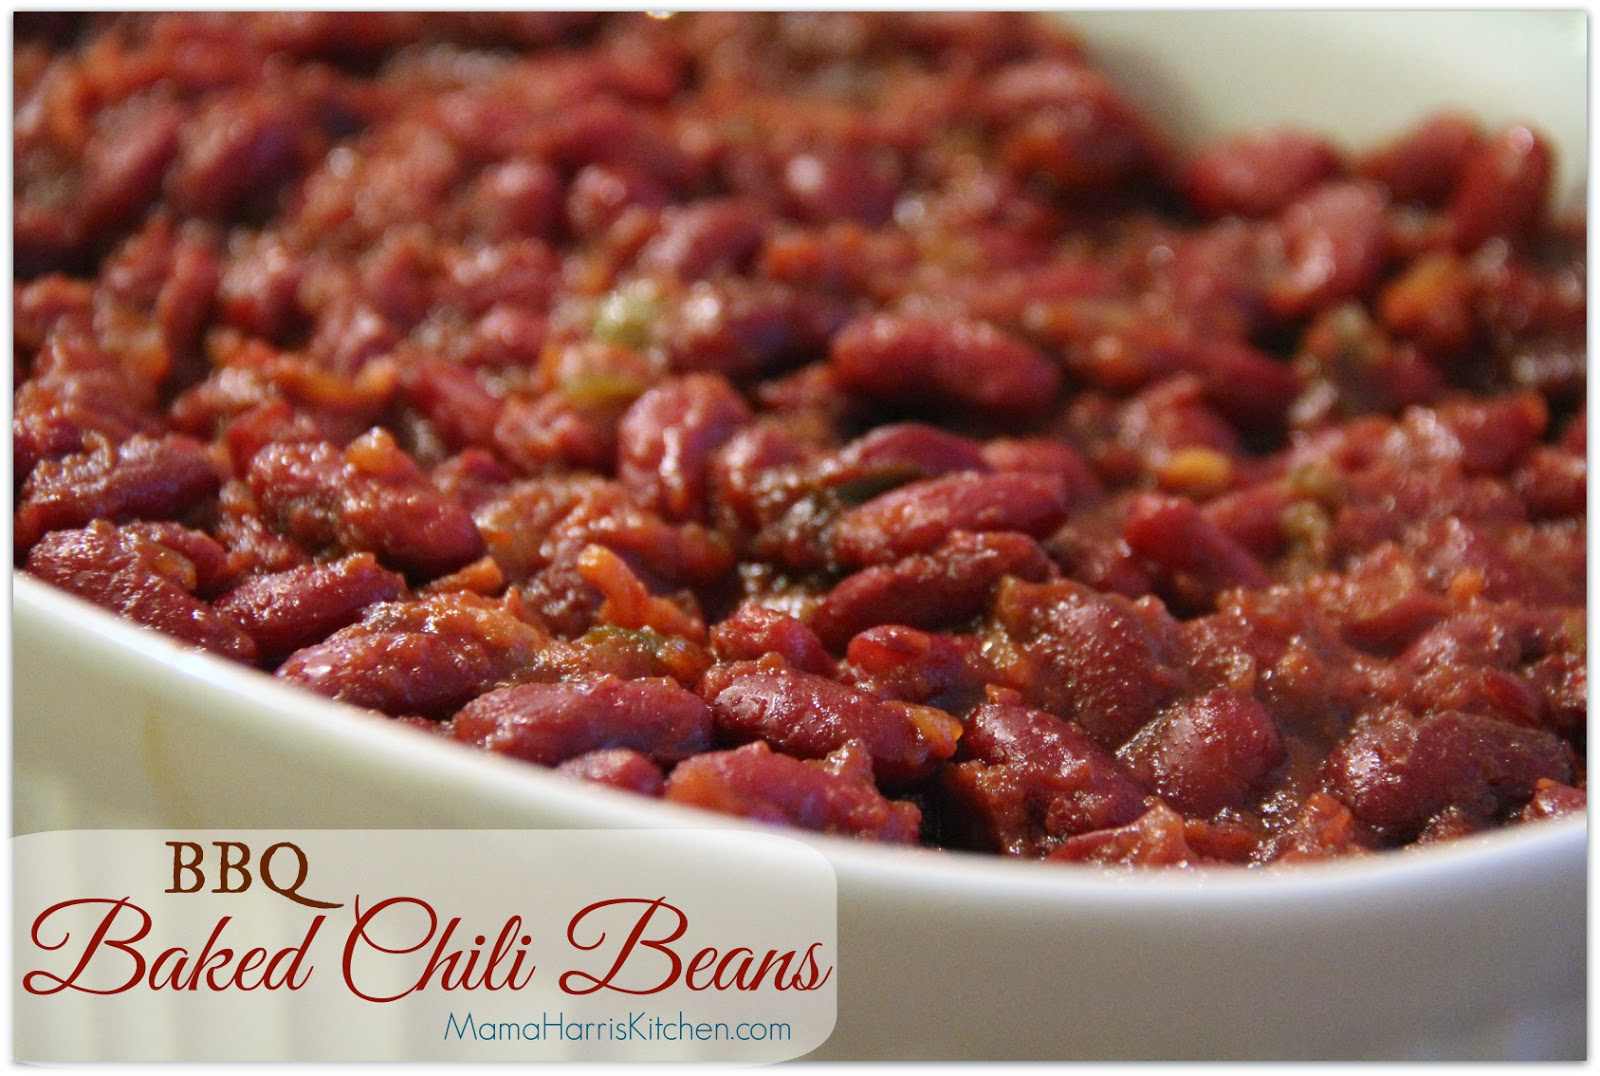 """BBQ Baked Chili Beans, perfect for the Big Day! Part of Mama Harris' Kitchen 3 """"Must-Have"""" Foods for the Big Game!"""